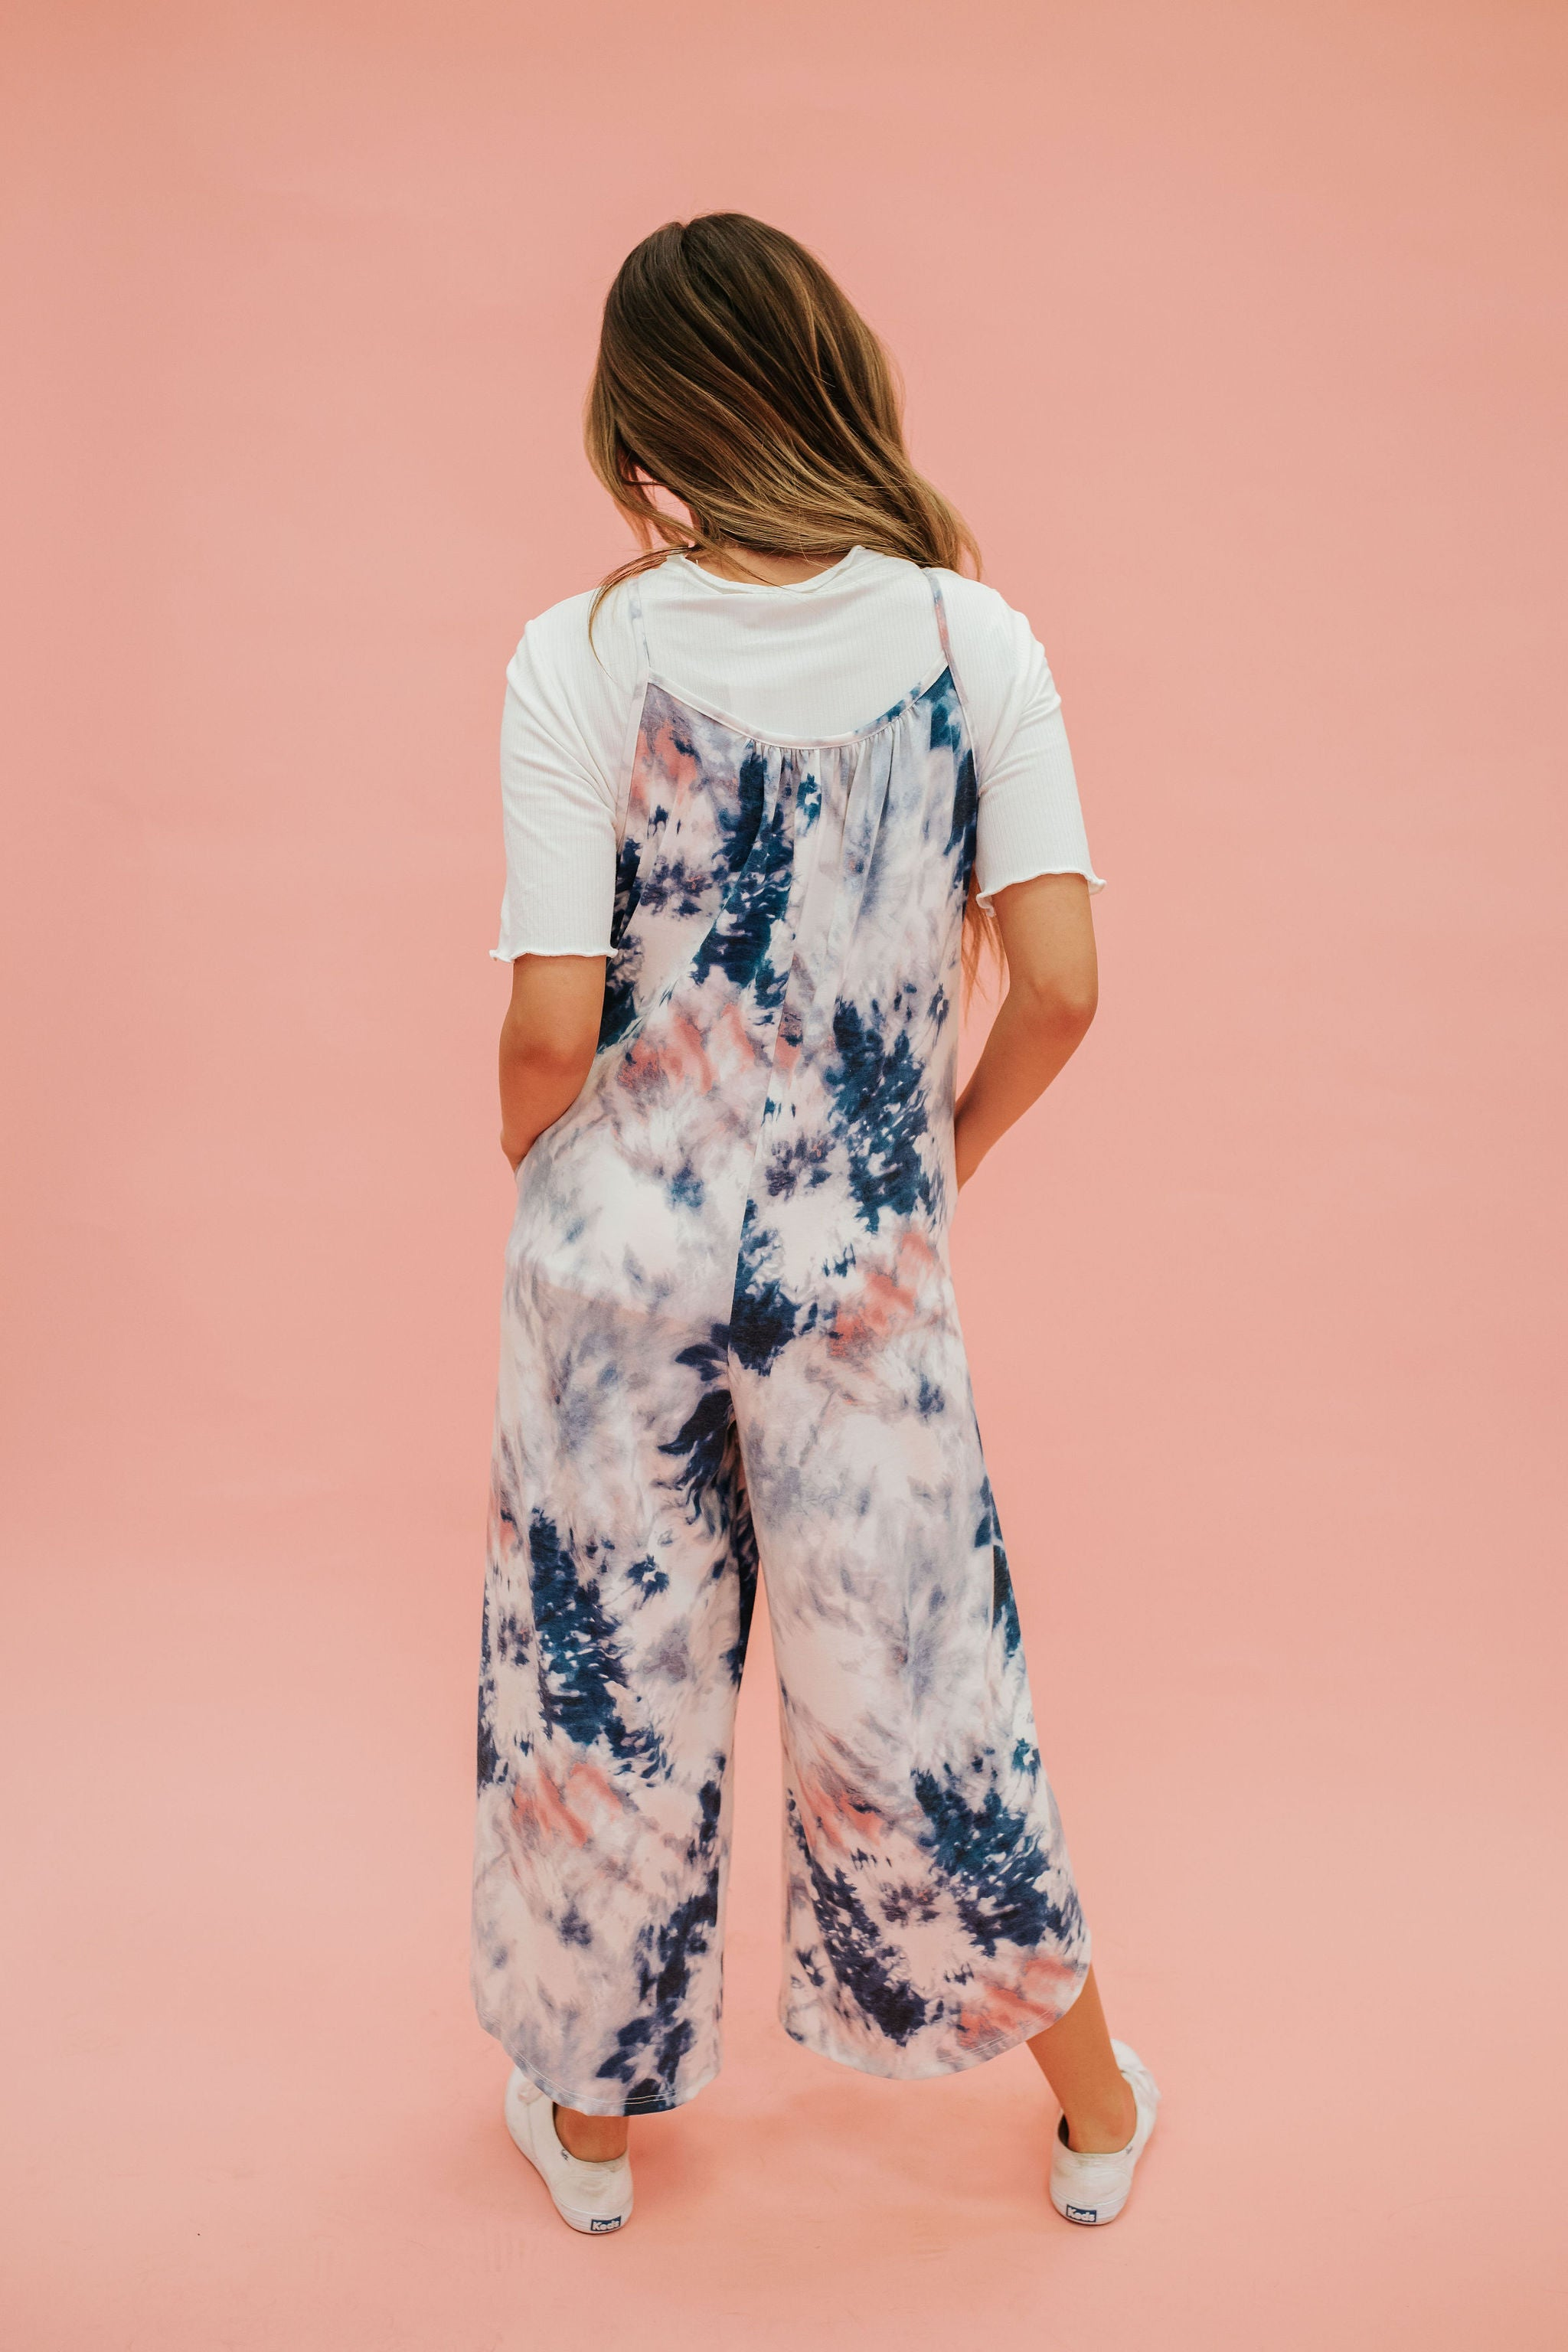 THE NINA TIE DIE JUMPSUIT IN NAVY